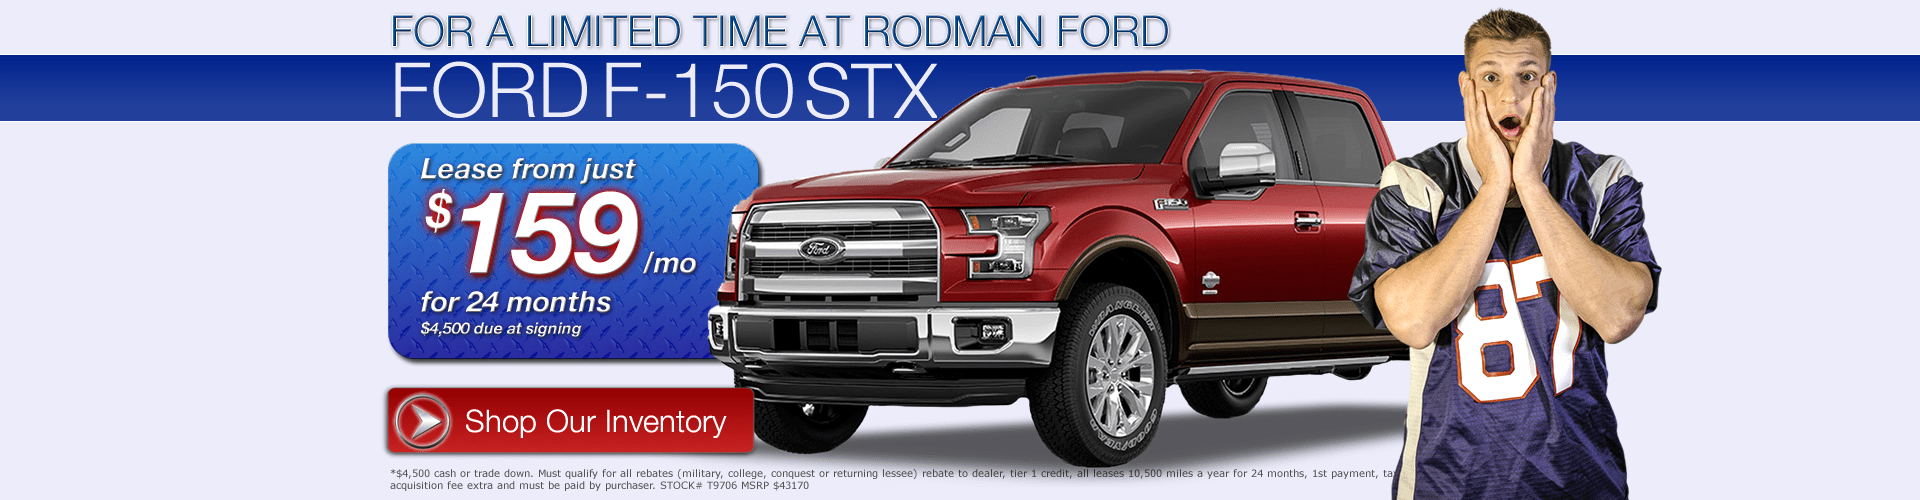 Ford Dealer Serving Greater Boston MA Rodman Ford - Ford dealers in ma